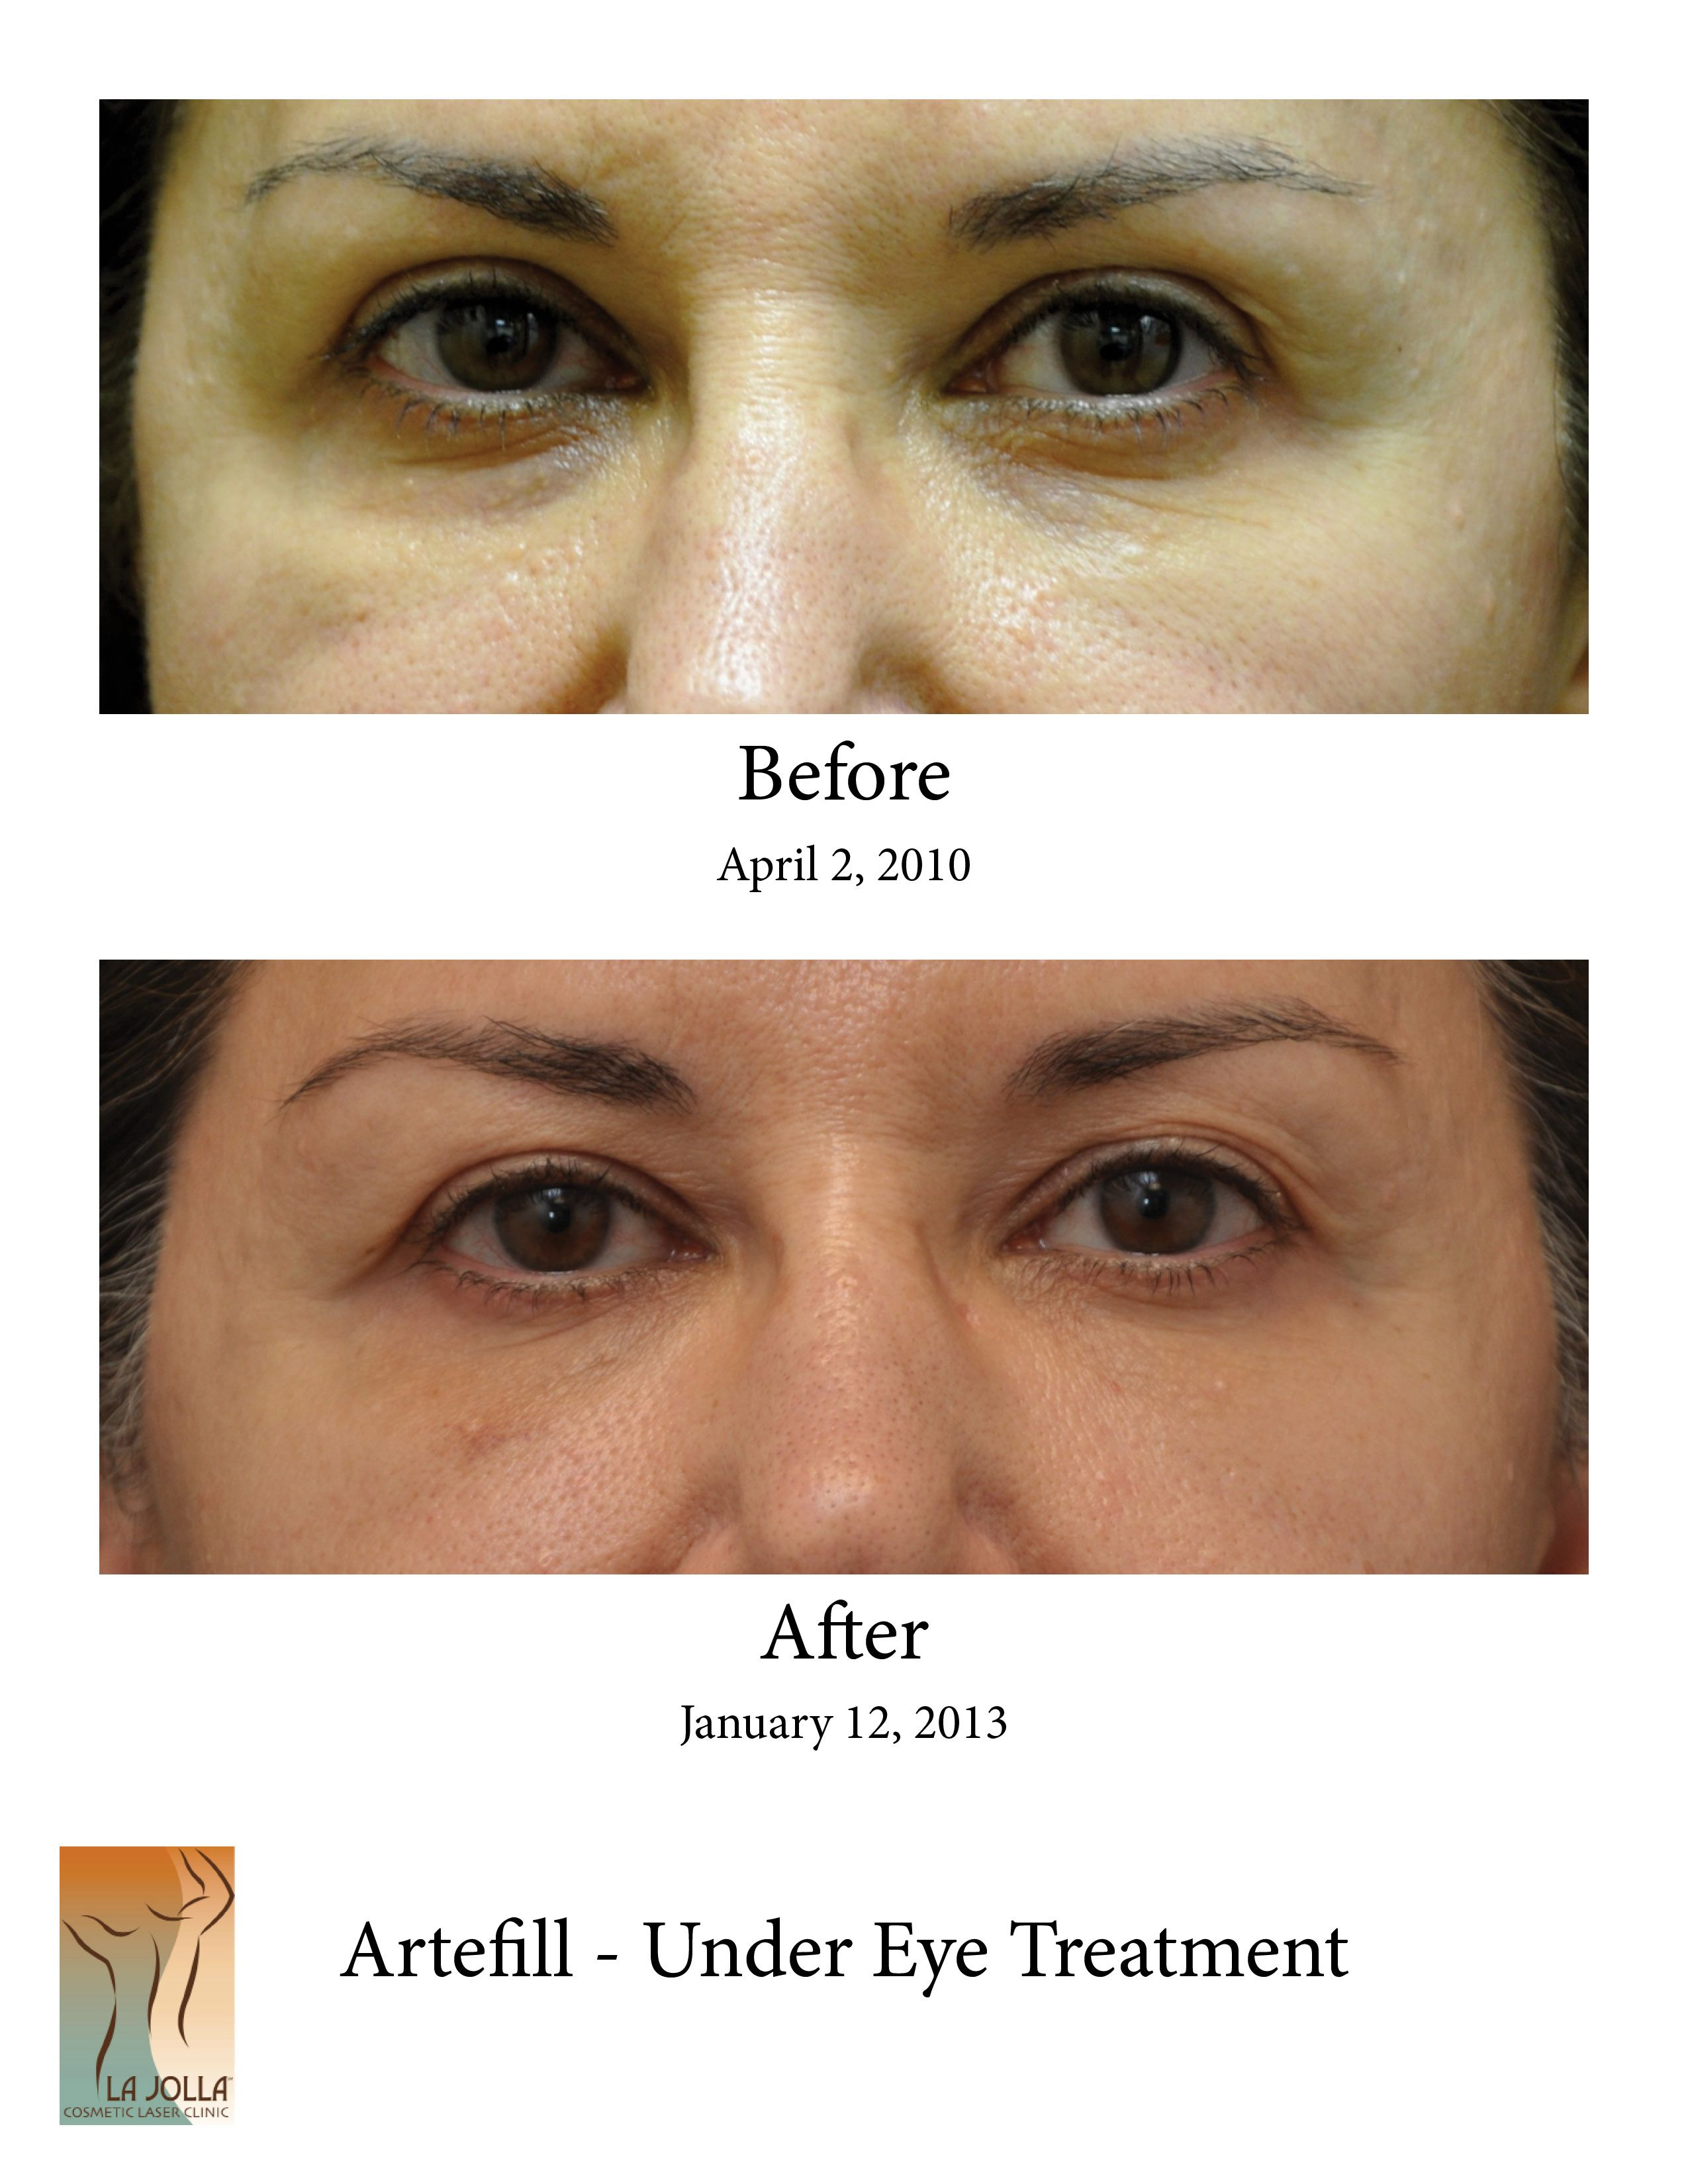 Patient Had Artefill Under Her Eyes To Take Care Of Dark Under Eye Circles To See More Photos Of Procedures Like Cosmetics Laser Dark Under Eye Laser Clinics